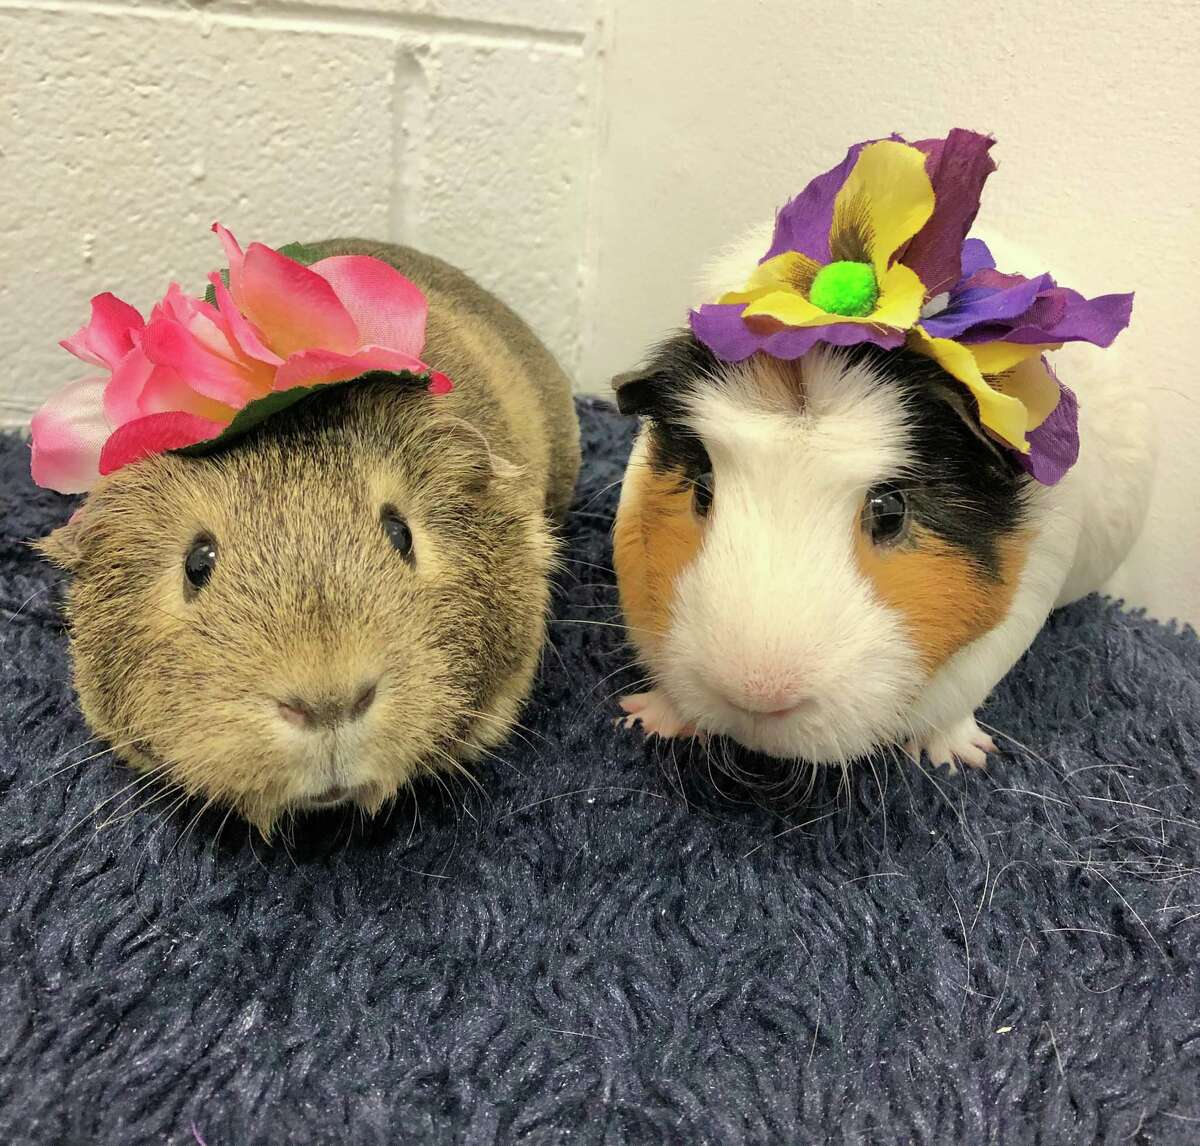 When you're best buds, you always want to be together. That's the case for Frieda and Peach, two guinea pig gal pals. They're both 2 years old, and since they're a bonded pair, they need a new home together. The staff veterinary team at the Connecticut Humane Society found that Peaches had a medical issue, but she's feeling better now after receiving an x-ray and some medication. Frieda waited patiently for her friend to recover, and now they're both ready for adoption. Just like any other pet, guinea pigs need lots of time with their humans every day, and enjoy having a wide open space for exploring, such as a penned-in area of a room. Visit CThumane.org/adopt to learn more. An online application can be found in each pet's profile.